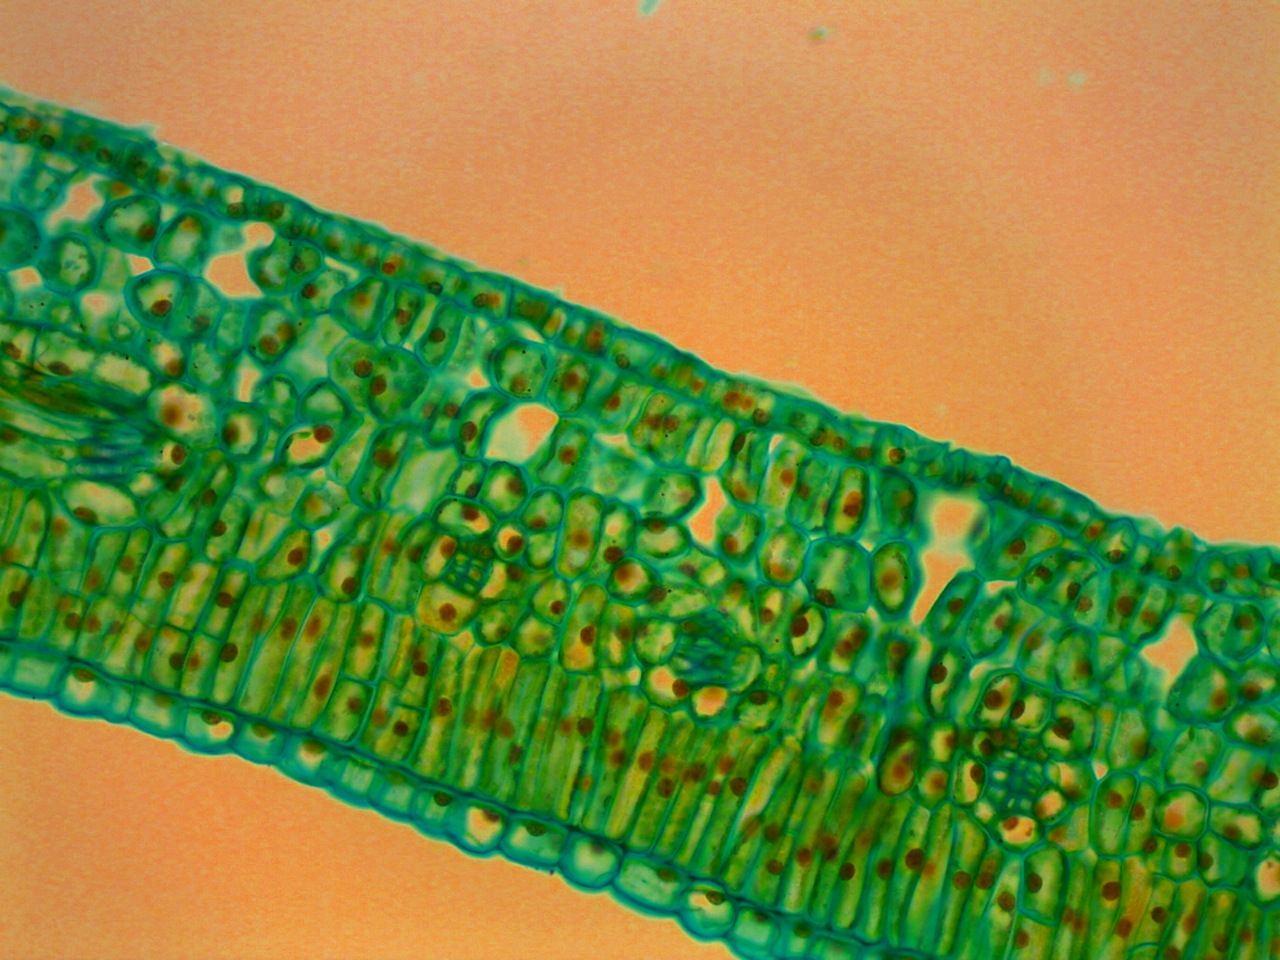 File Hydrophytic Leaf Cross Section Stained Microscope